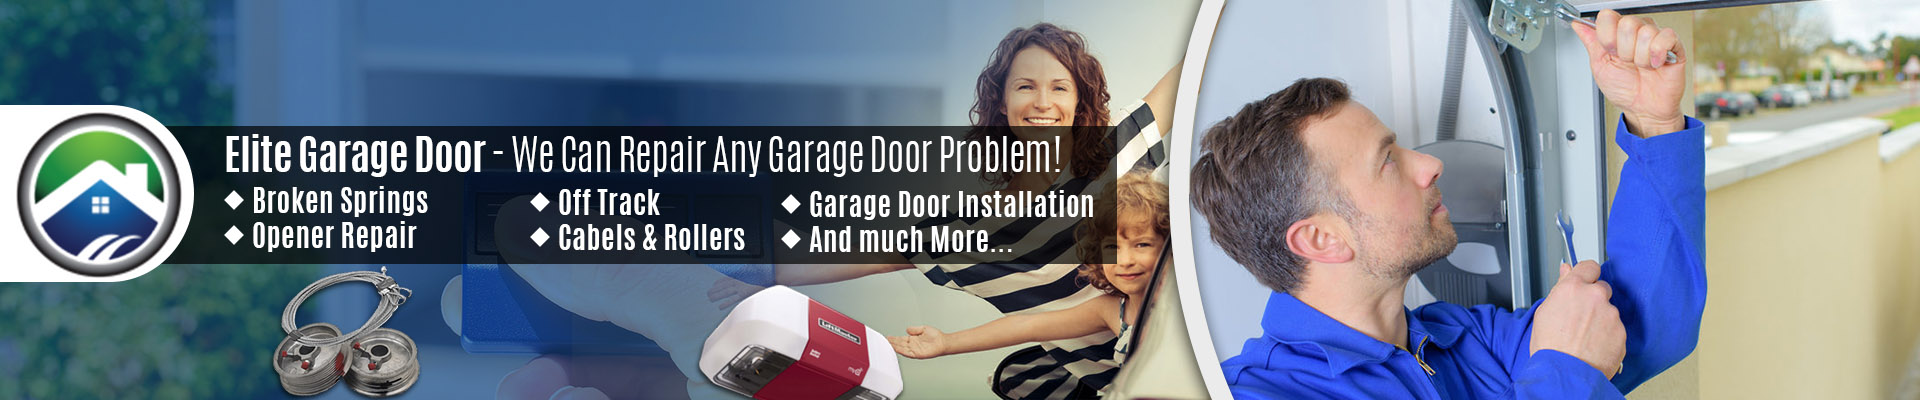 Garage Door Repair Redmond WA - Elite Tech Garage Door Services